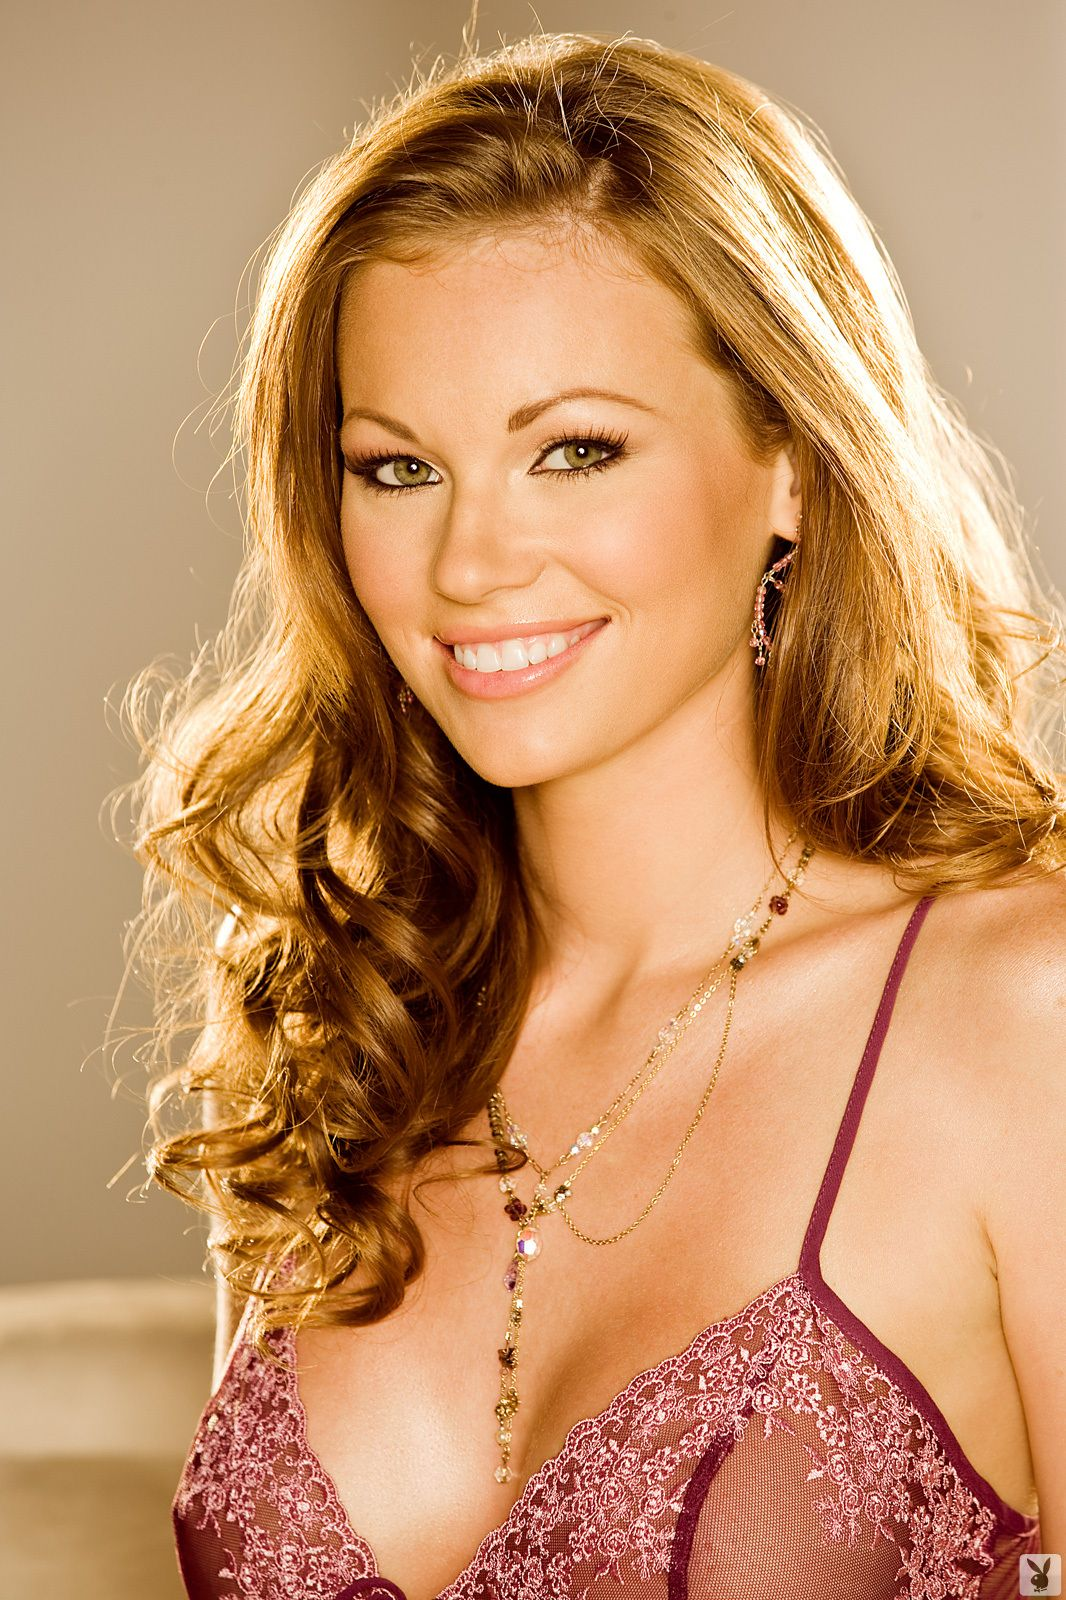 3203 kimberly phillips 8.4 pic rating 10+. | beautiful women in the